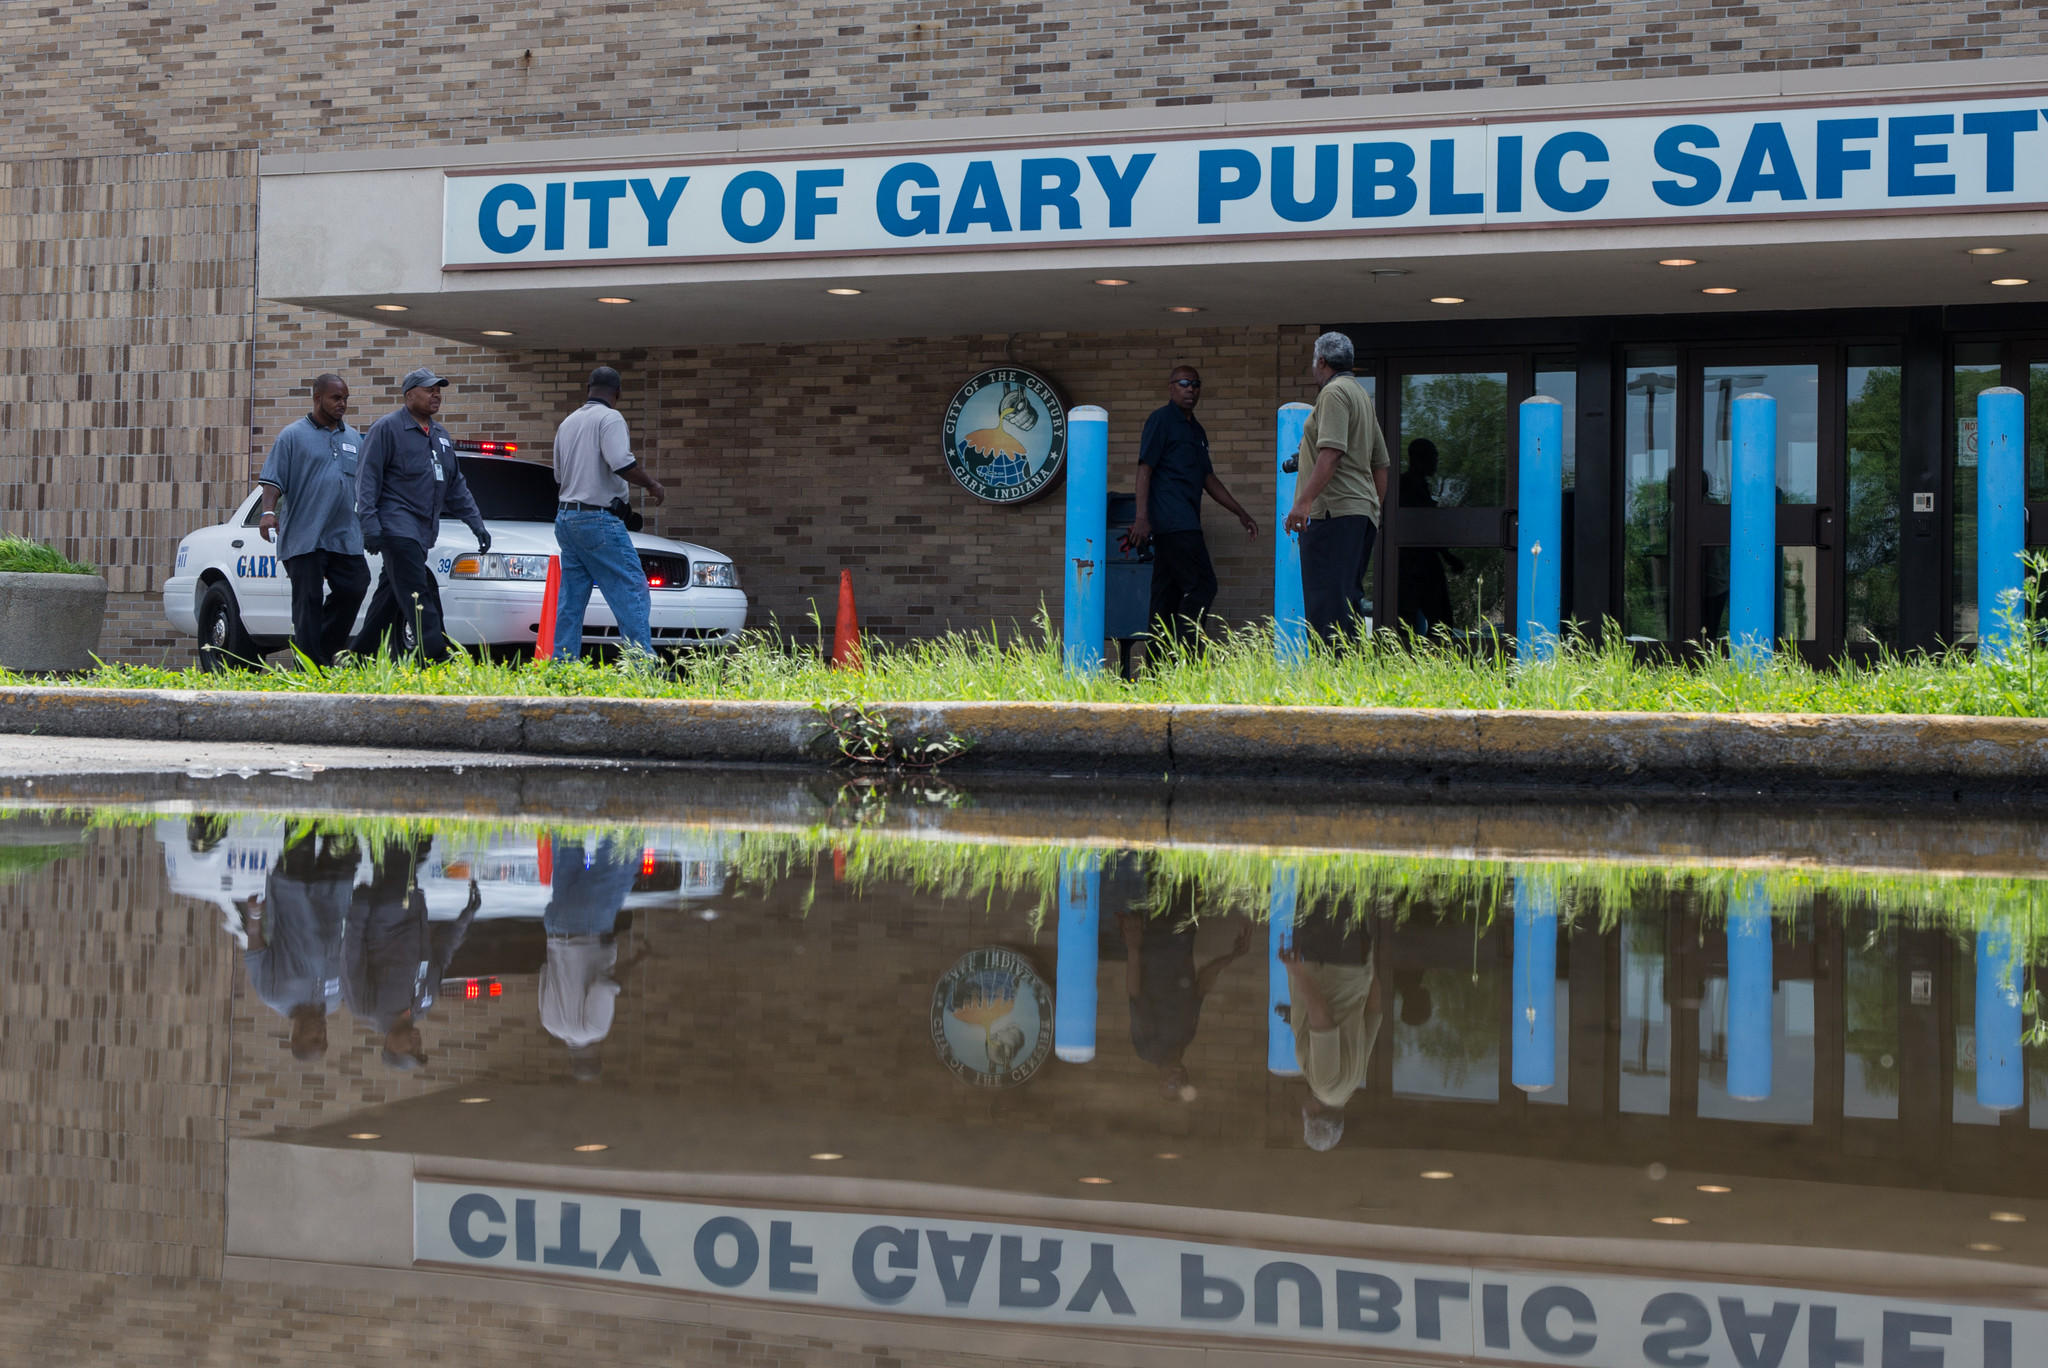 A police car is placed in front of Gary Police station as a memorial to fallen officer Jeffery Westerfield, 47, in Gary on Monday, July 7, 2014. (Zbigniew Bzdak/Chicago Tribune) B583844744Z.1 ....OUTSIDE TRIBUNE CO.- NO MAGS, NO SALES, NO INTERNET, NO TV, CHICAGO OUT, NO DIGITAL MANIPULATION...